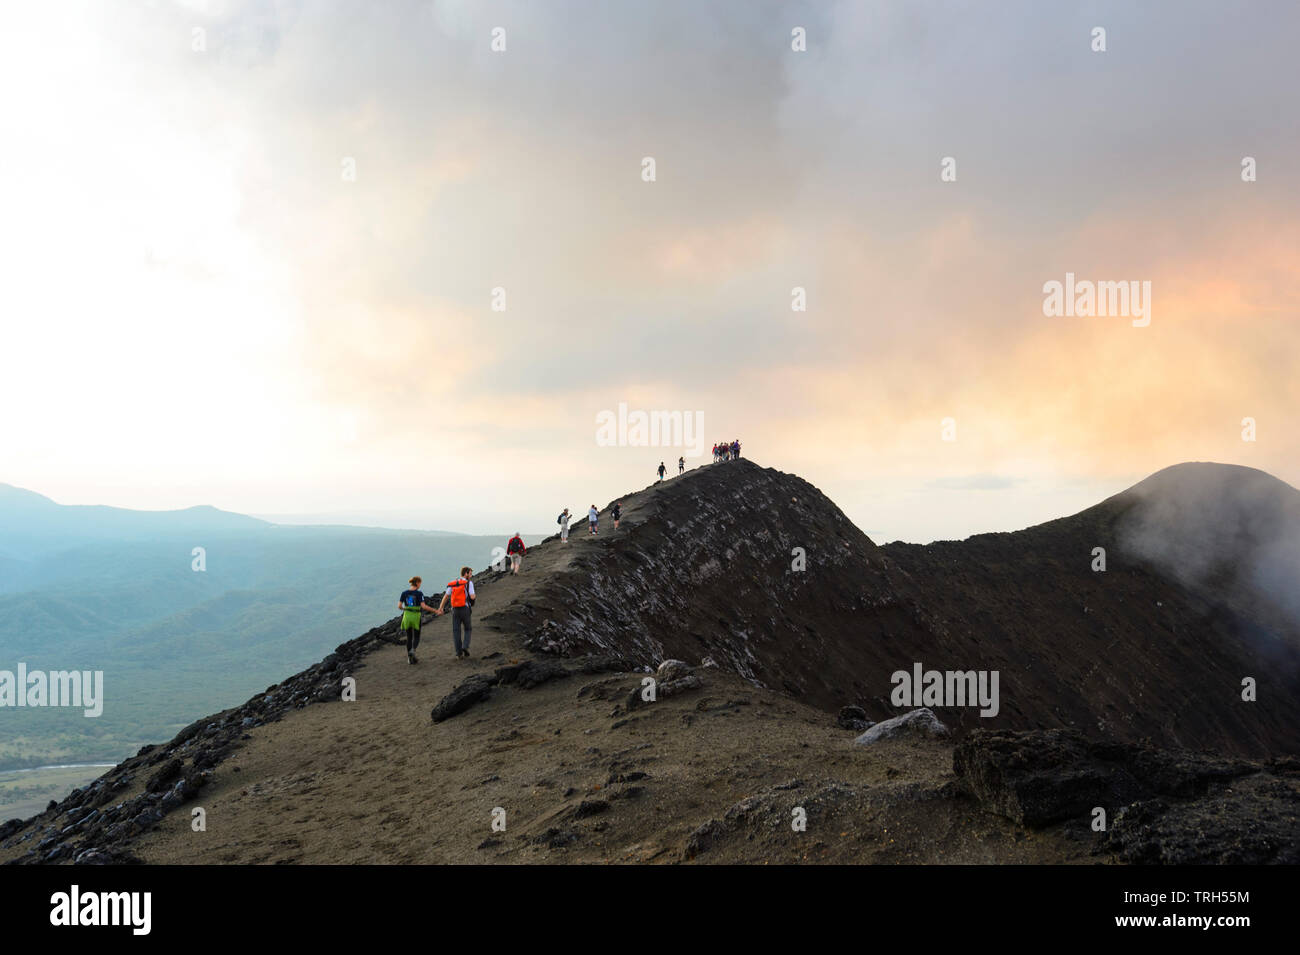 Tourists walking on the crater rim of Mt Yasur Volcano at sunset, Tanna Island, Vanuatu Stock Photo